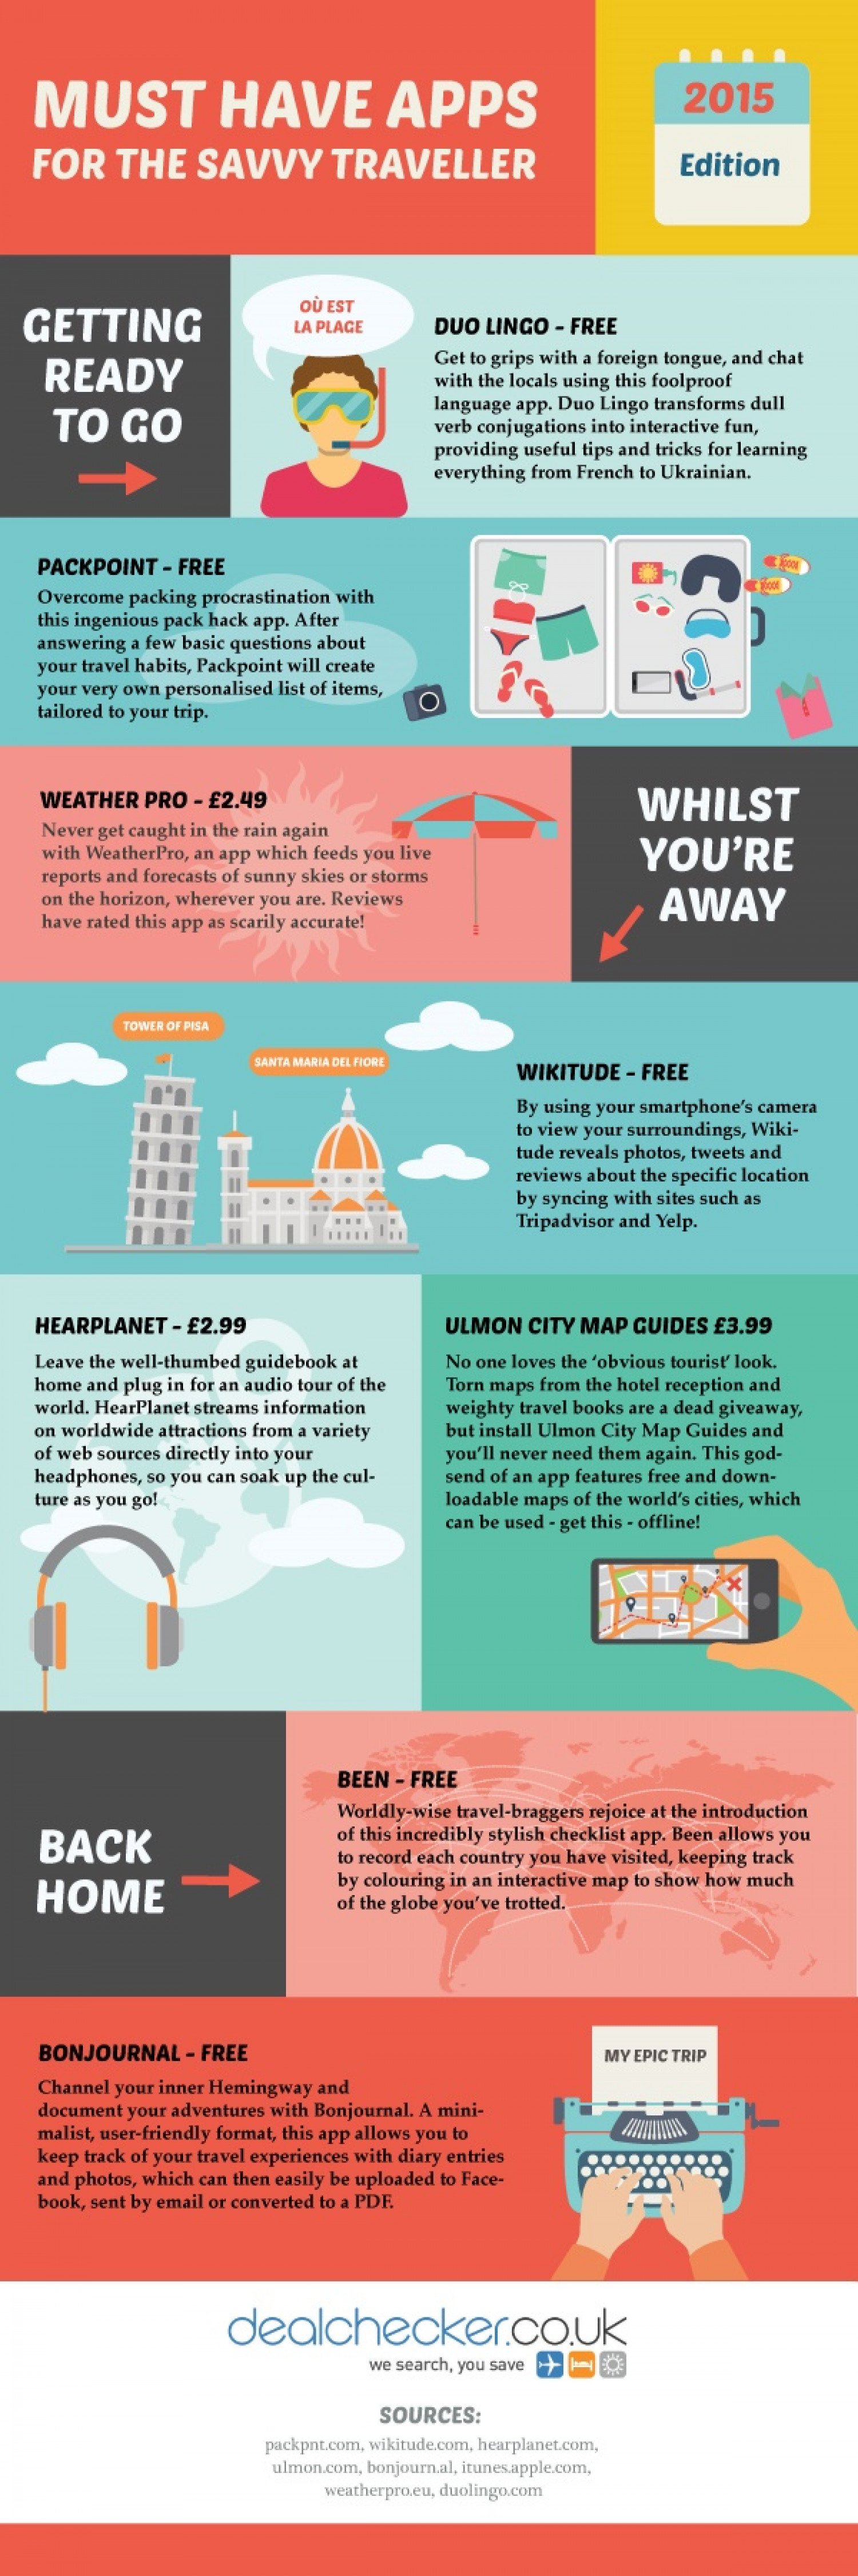 Dealchecker's Must-Have Travel Apps 2015 Infographic